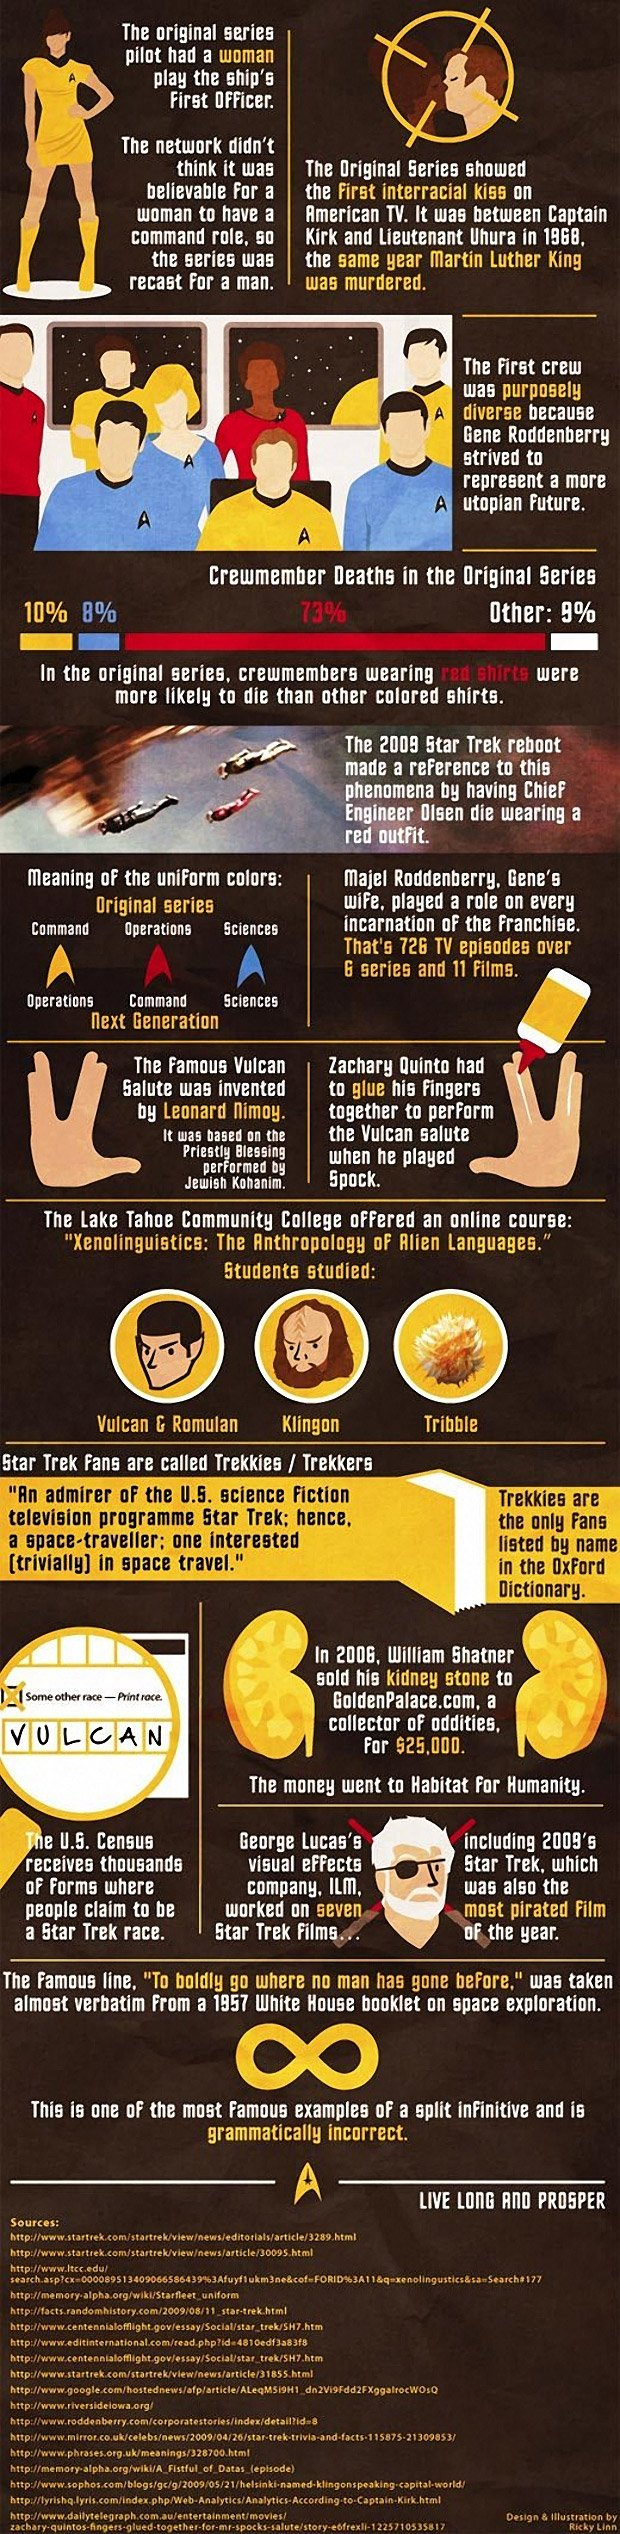 Infographic: 15 Unknown Facts About Star Trek